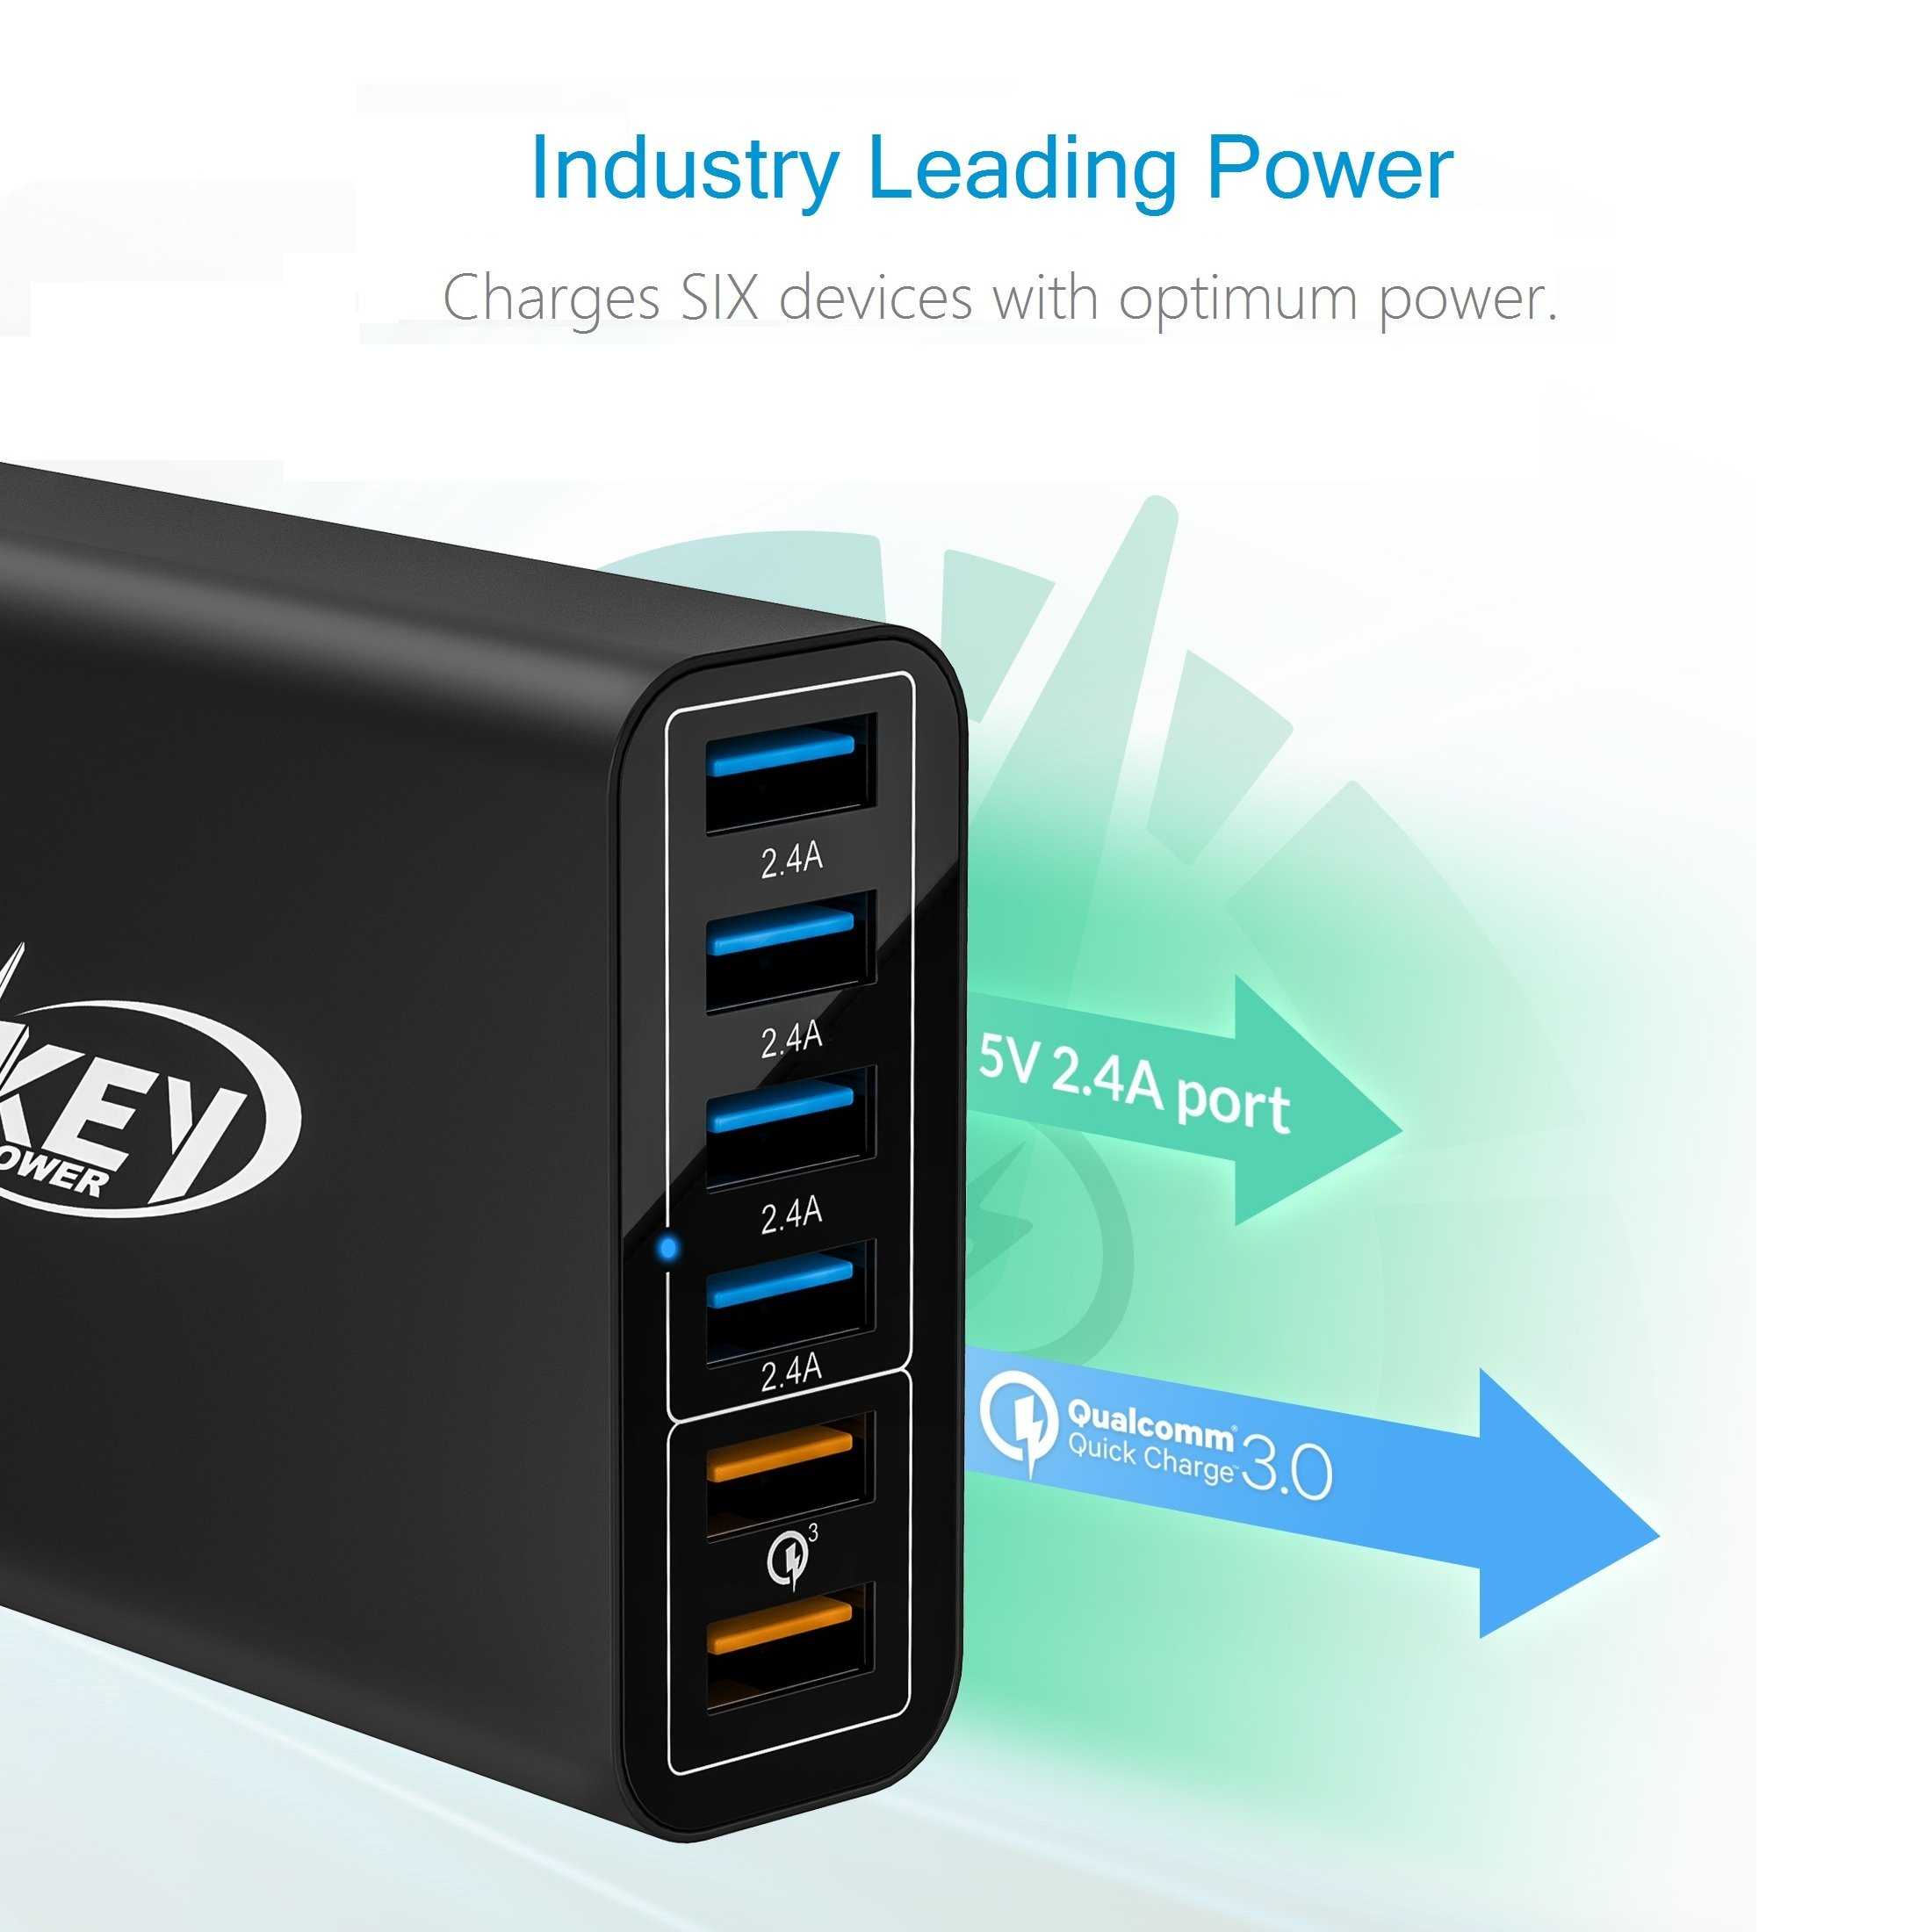 Key Power Quick Charge 3.0 Wall Charger, 60W 6-Port USB Fast Charger Desktop Charging Station for iPhone/PRO MAX/XS Max/XR/X/8/7/Plus, iPad Pro/Air 2/Mini, Galaxy S10/S9/S8/S7/Plus, HTC and More